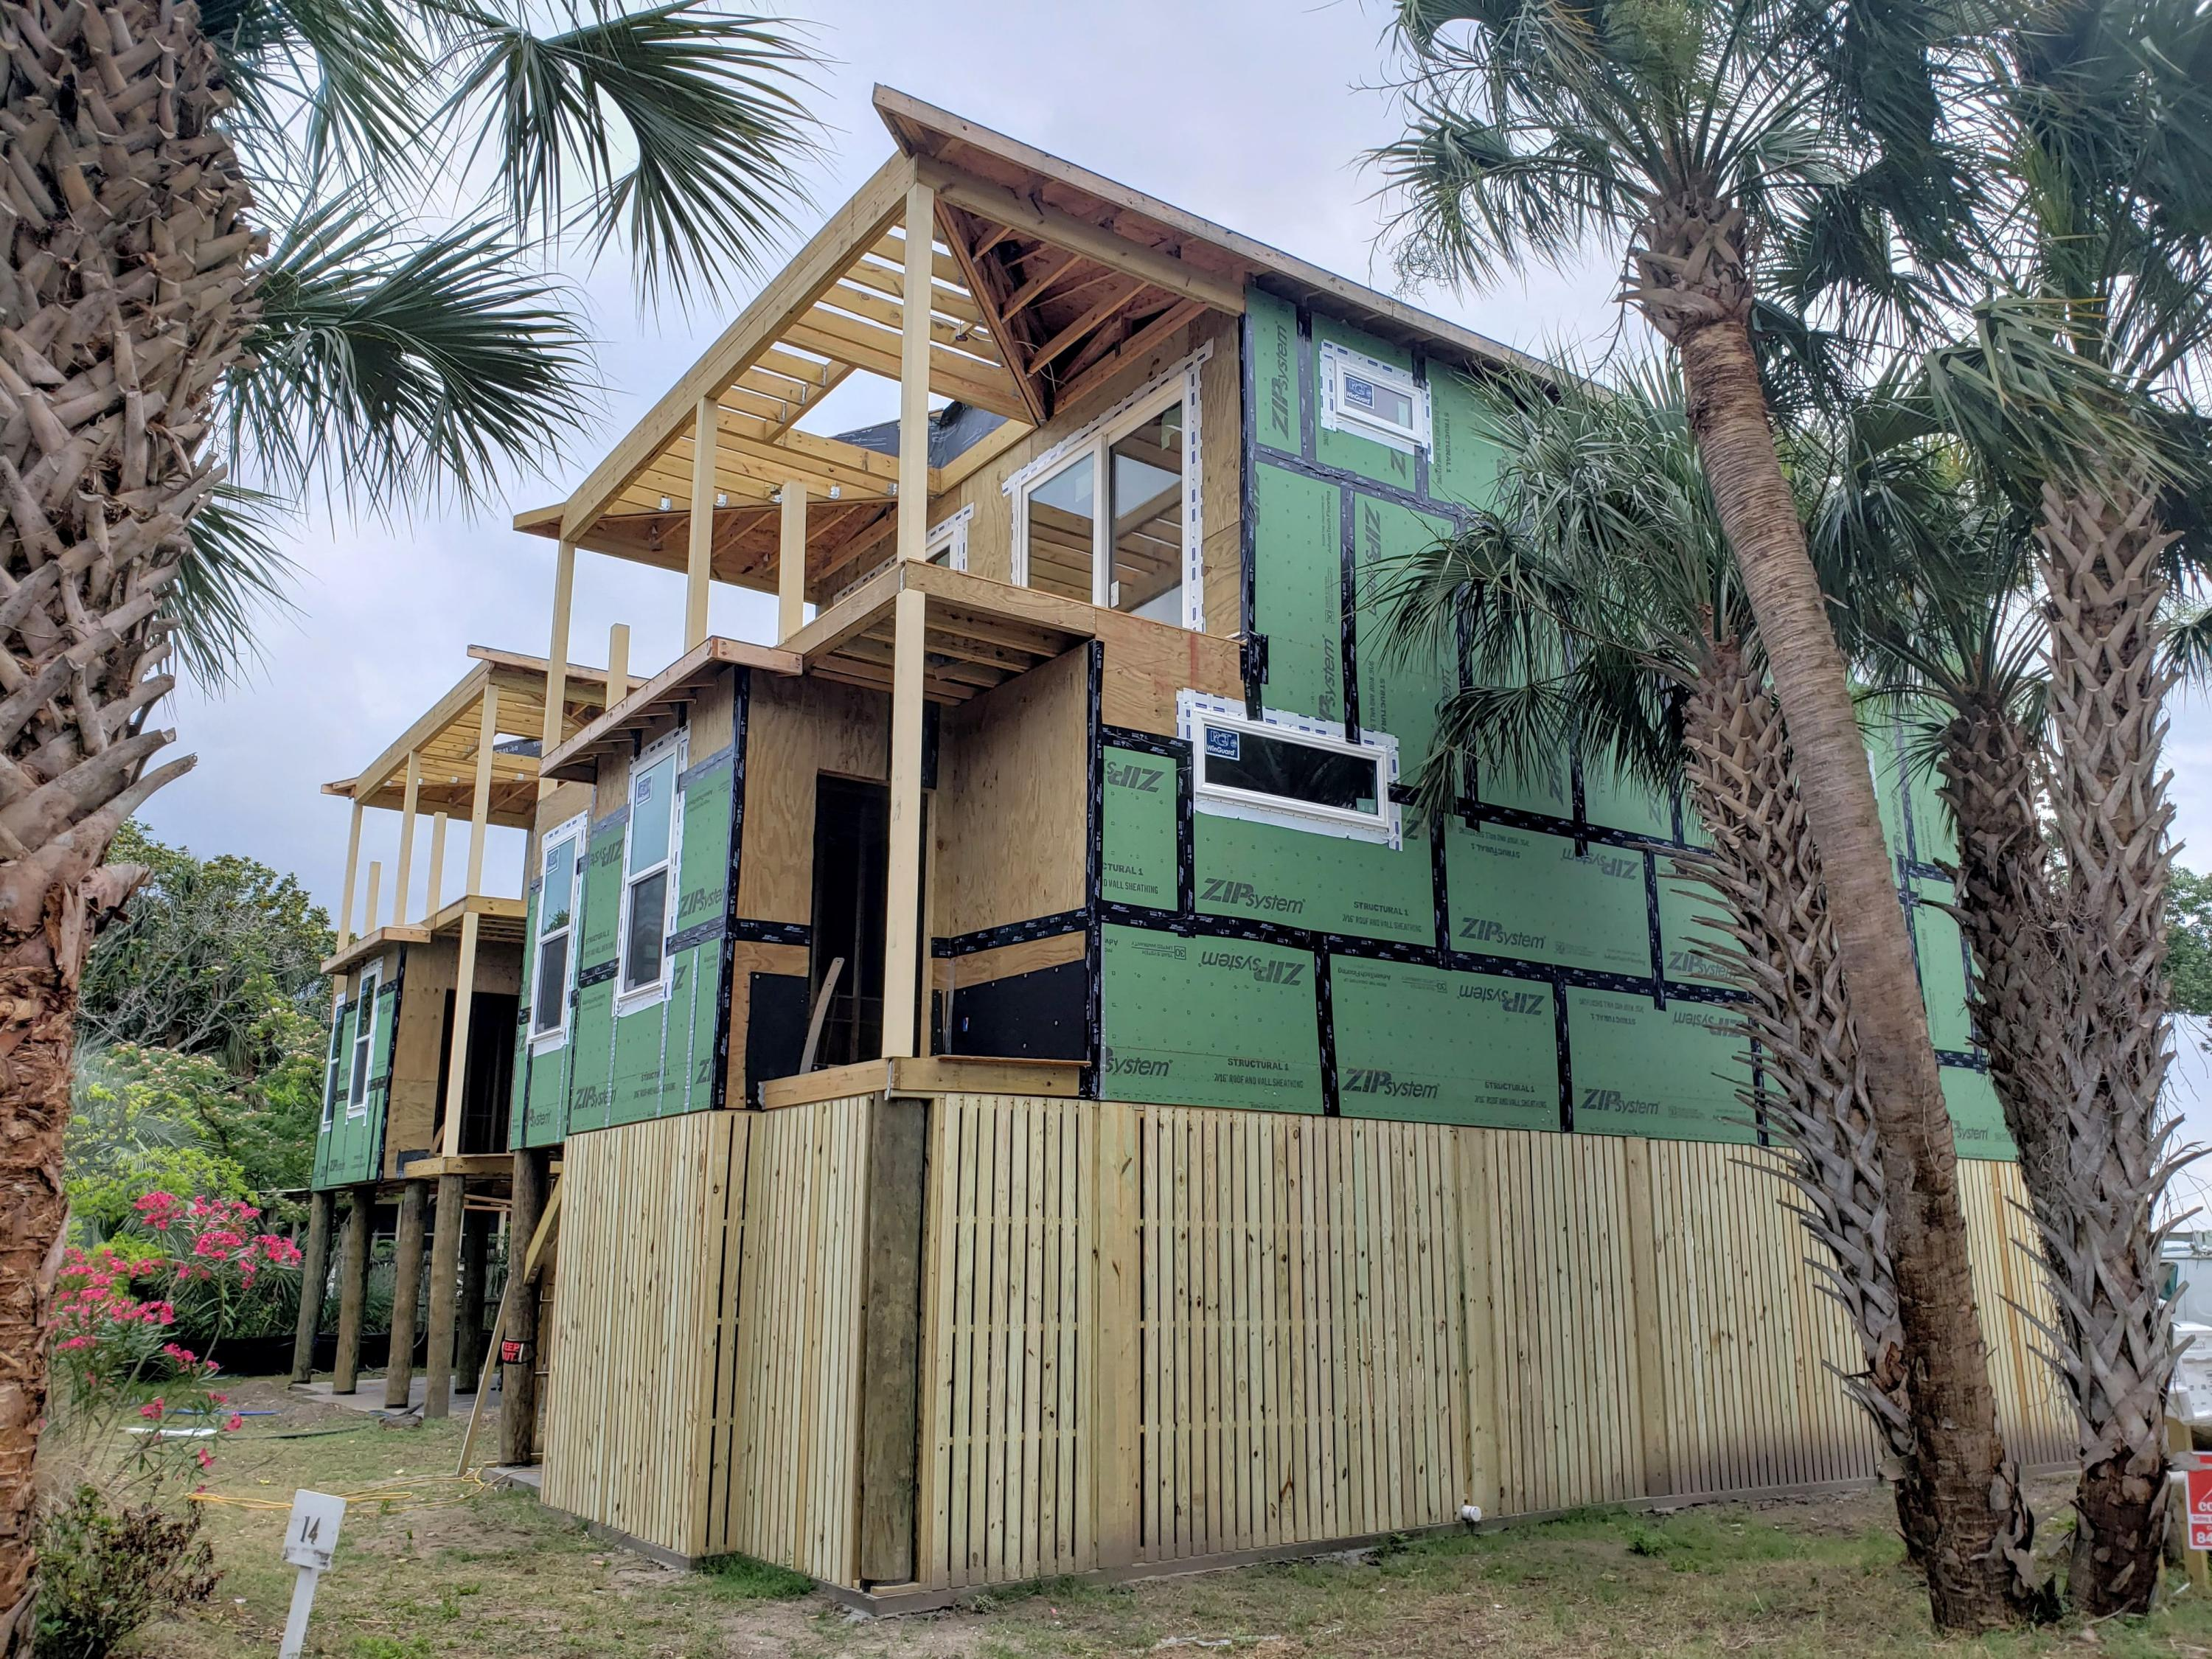 Mariners Cay Homes For Sale - 16 Mariners Cay, Folly Beach, SC - 0